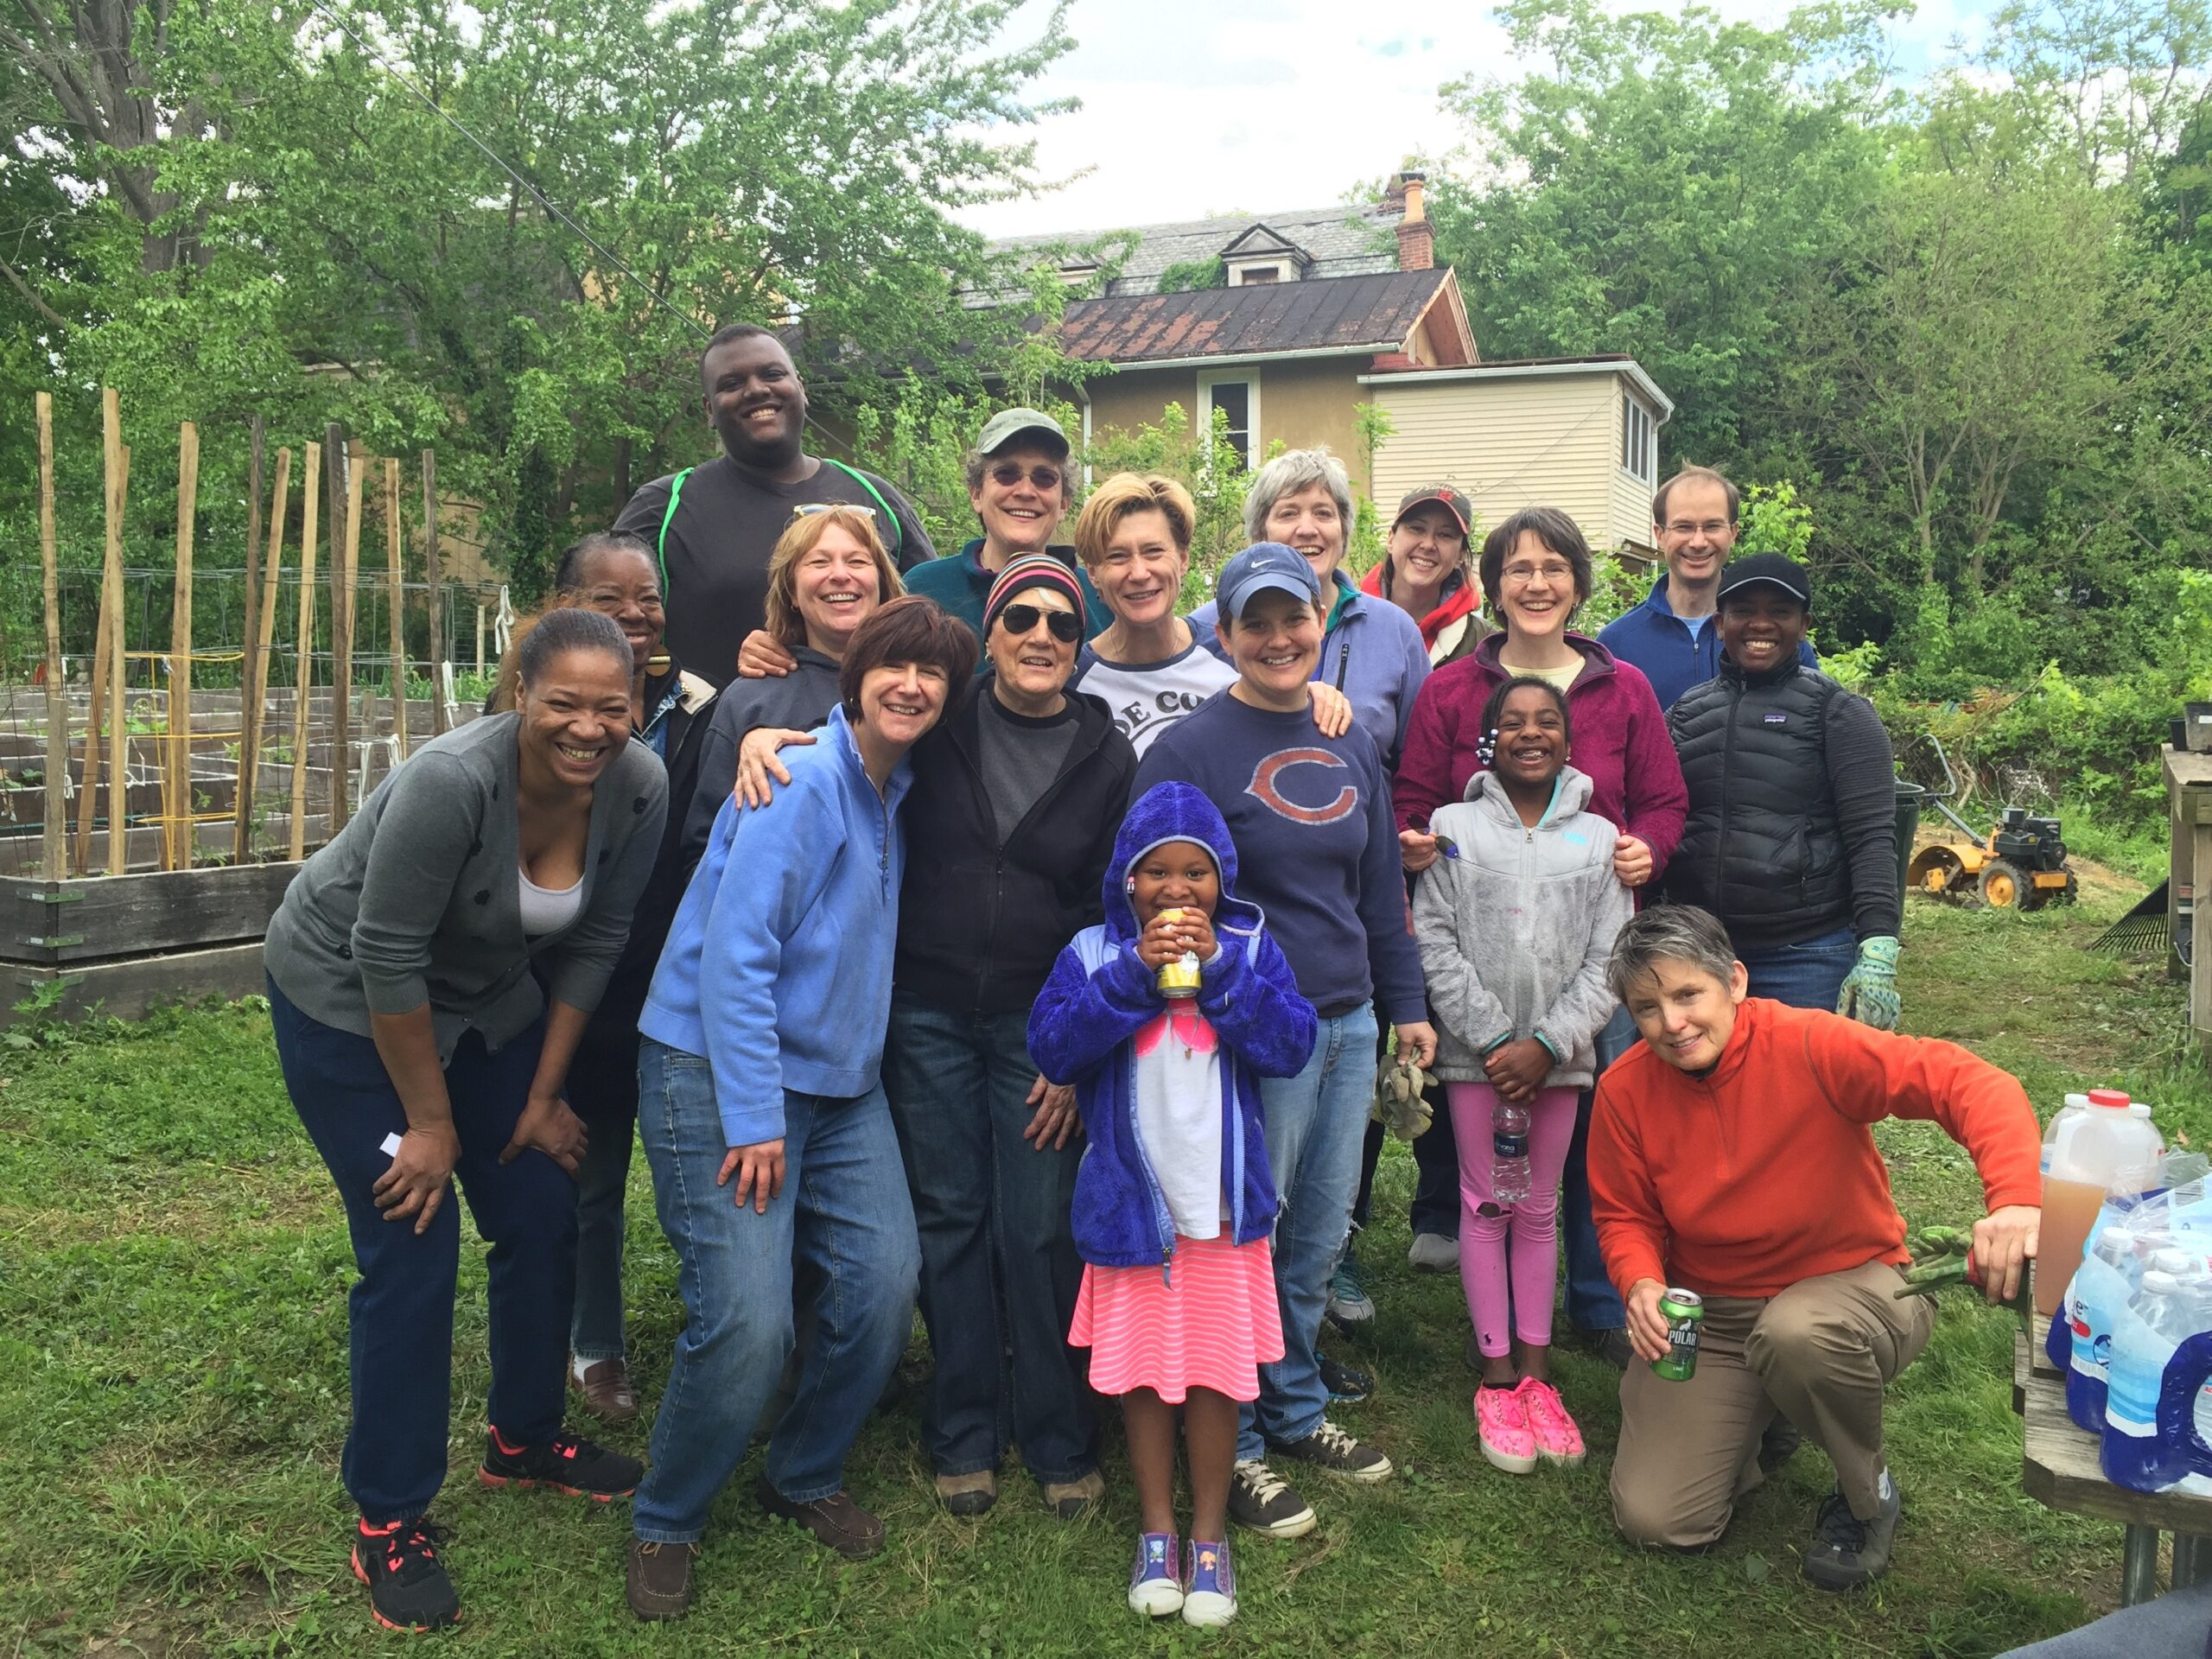 GO! and Hansberry Garden group picture